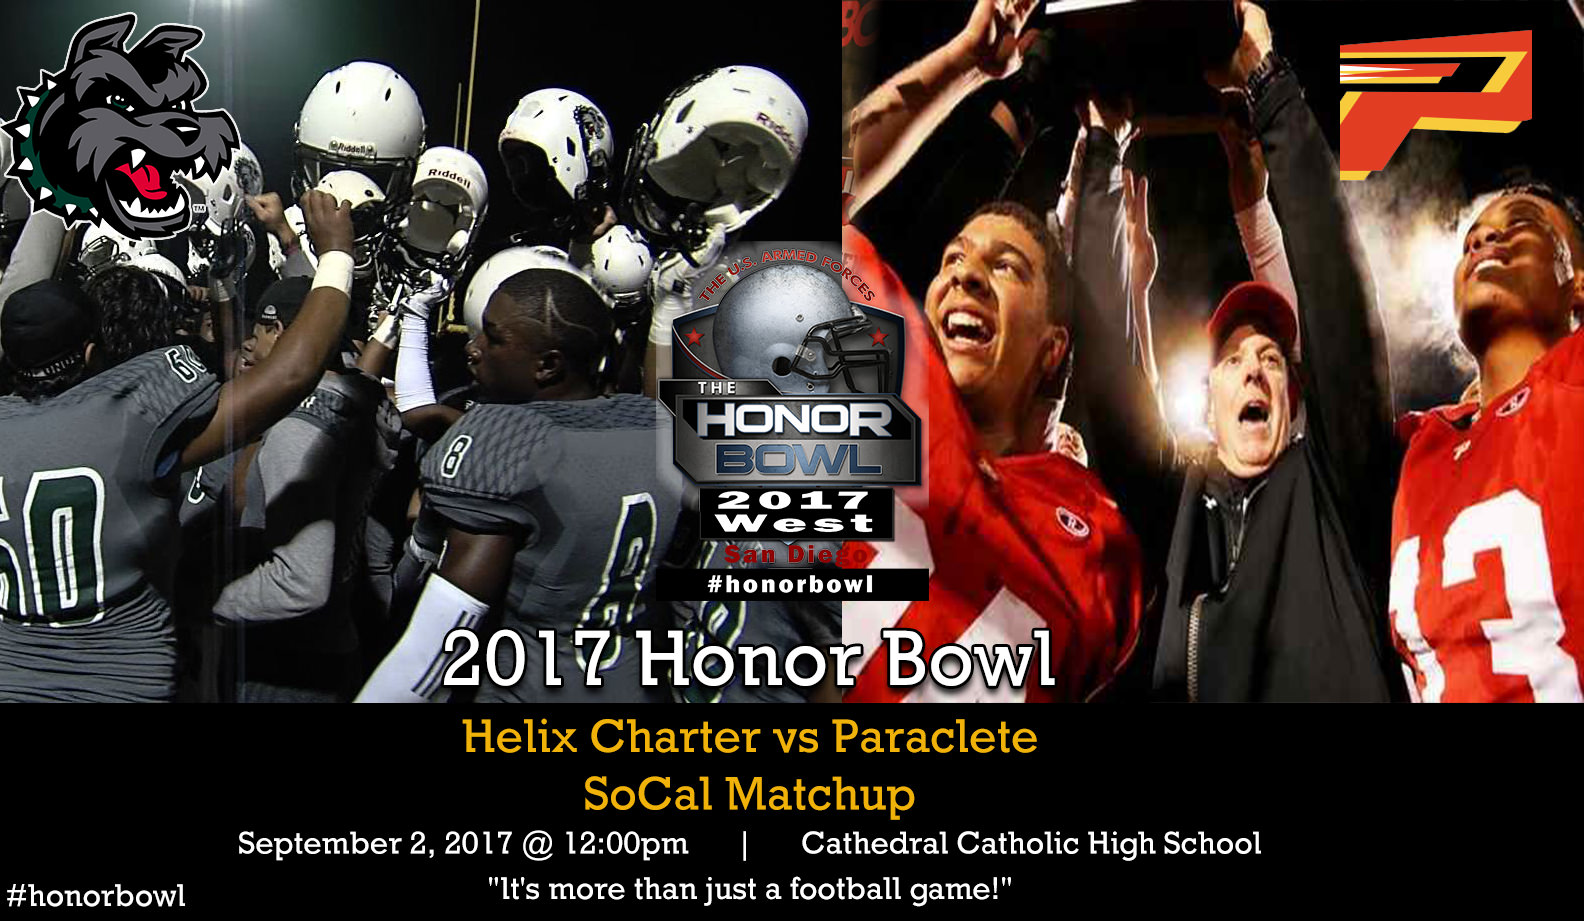 Game Three: Helix Charter vs. Paraclete HS